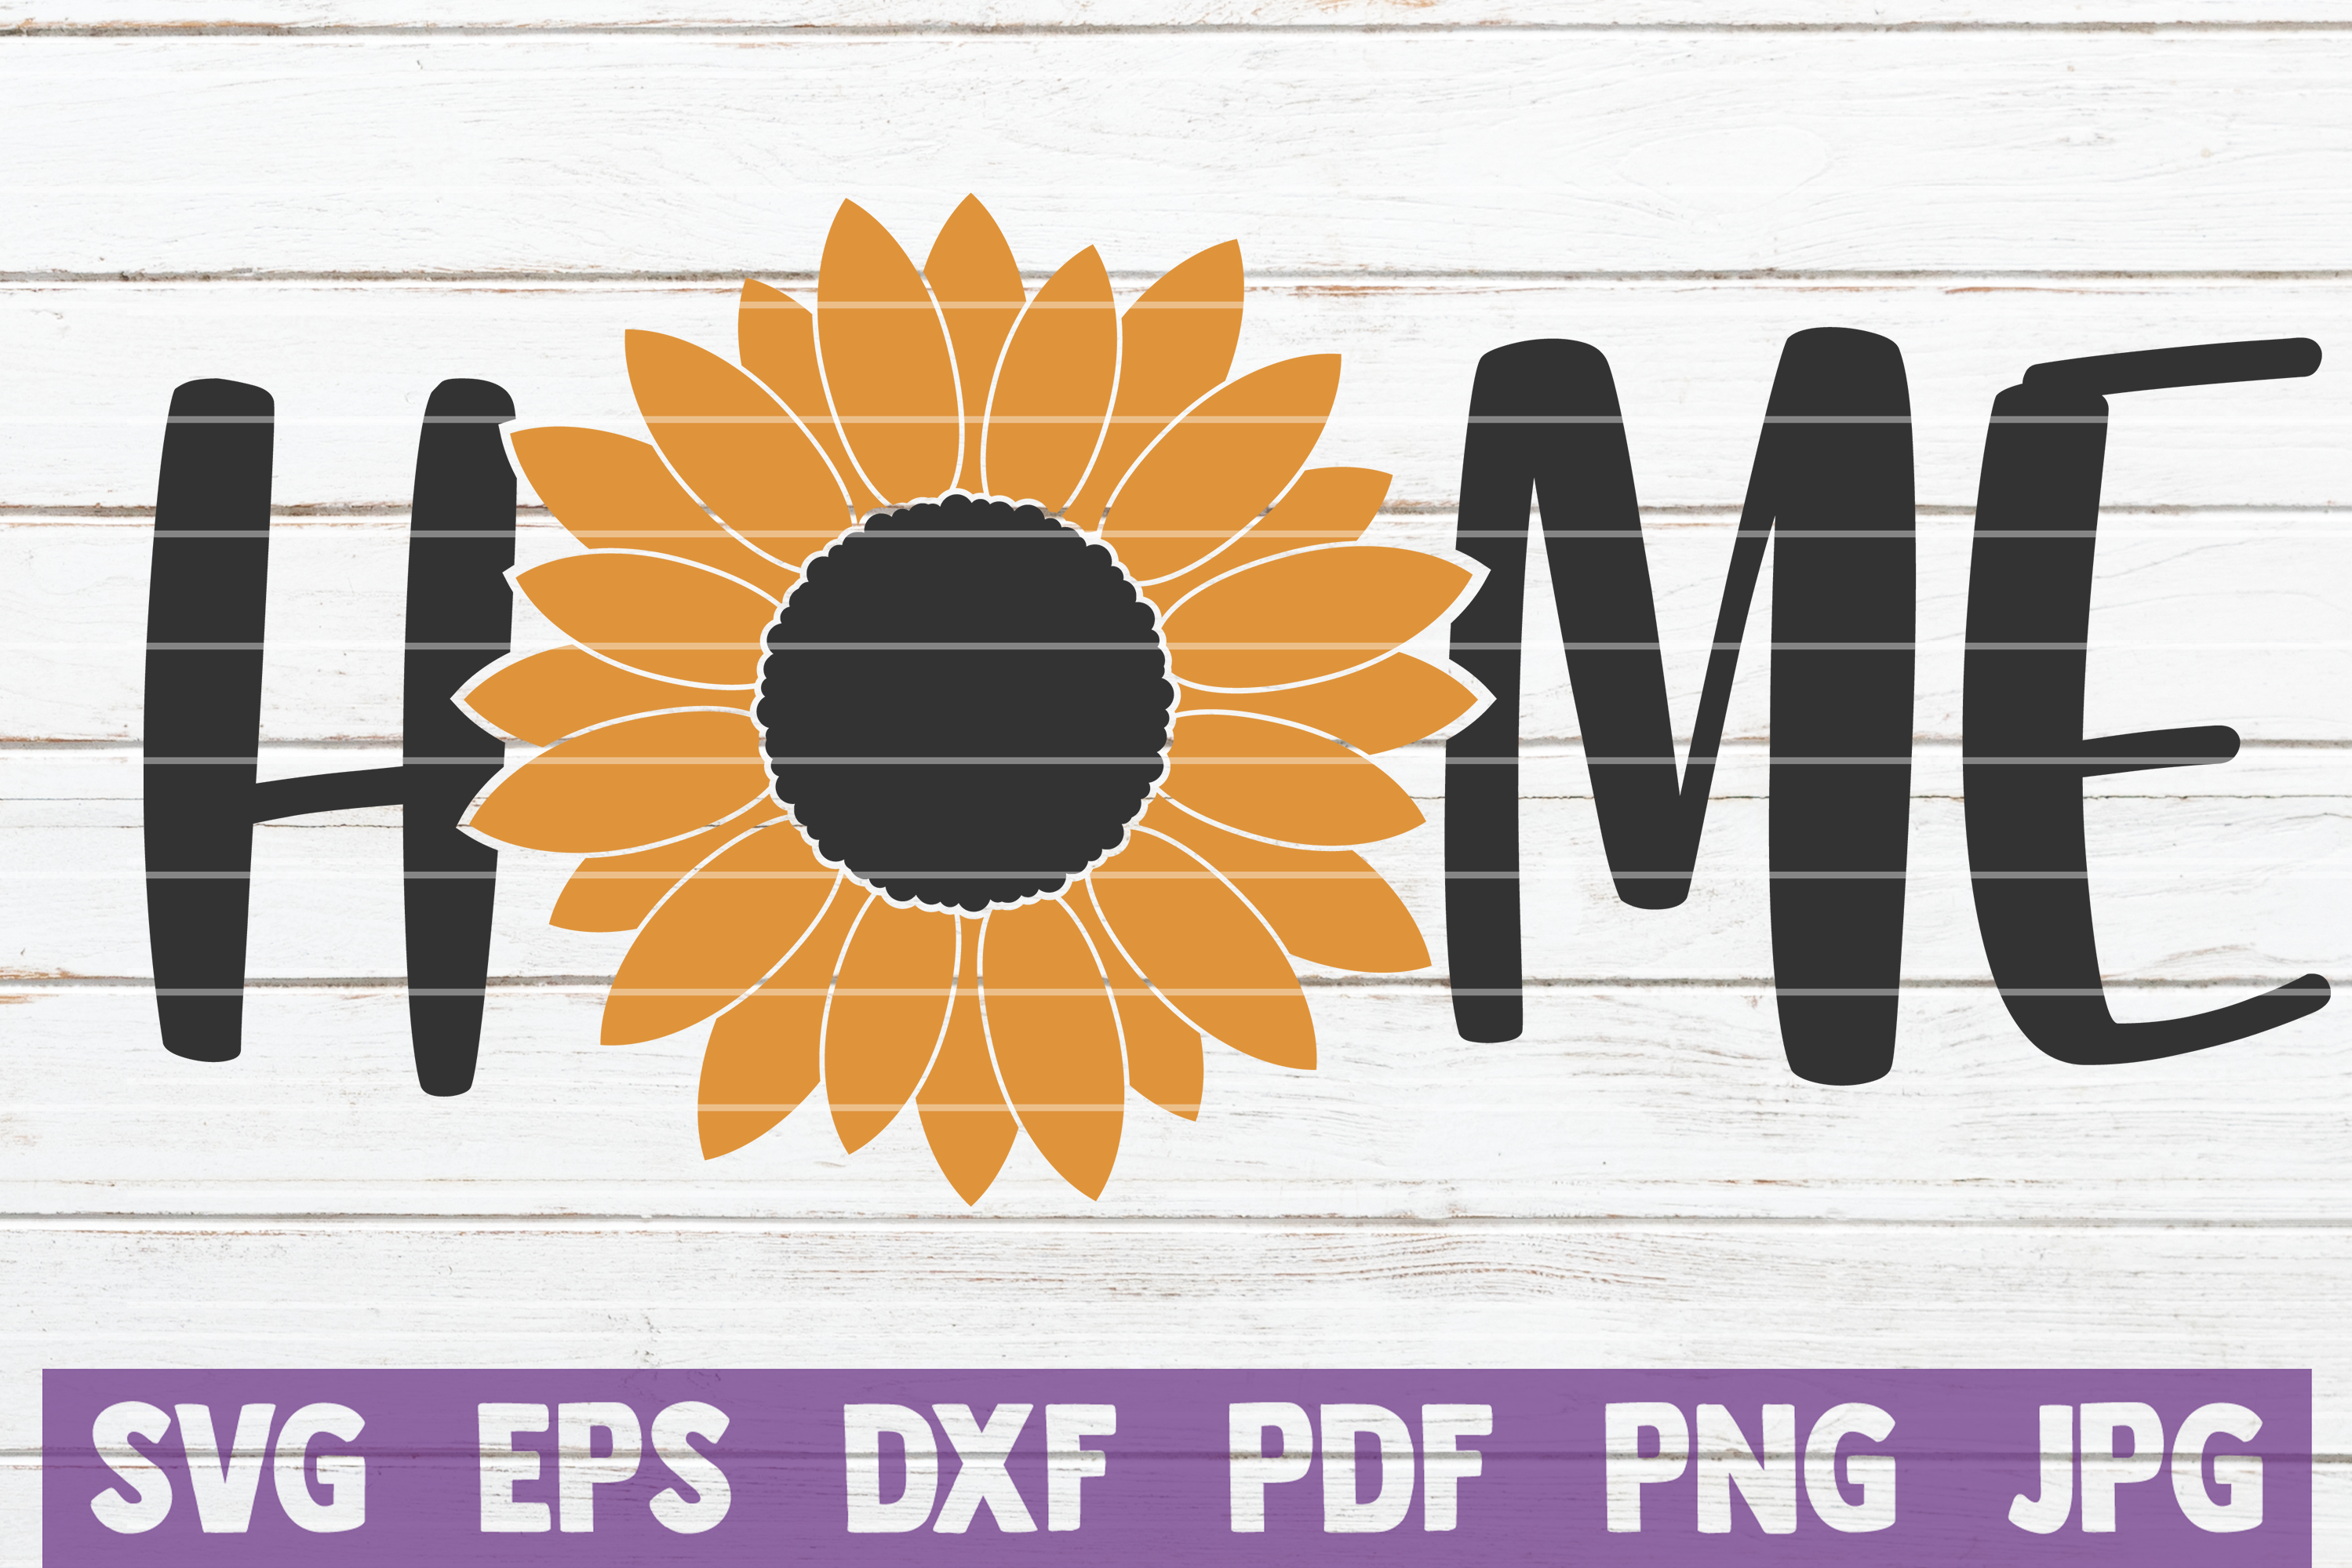 Download Free Sunflower Home Graphic By Mintymarshmallows Creative Fabrica for Cricut Explore, Silhouette and other cutting machines.